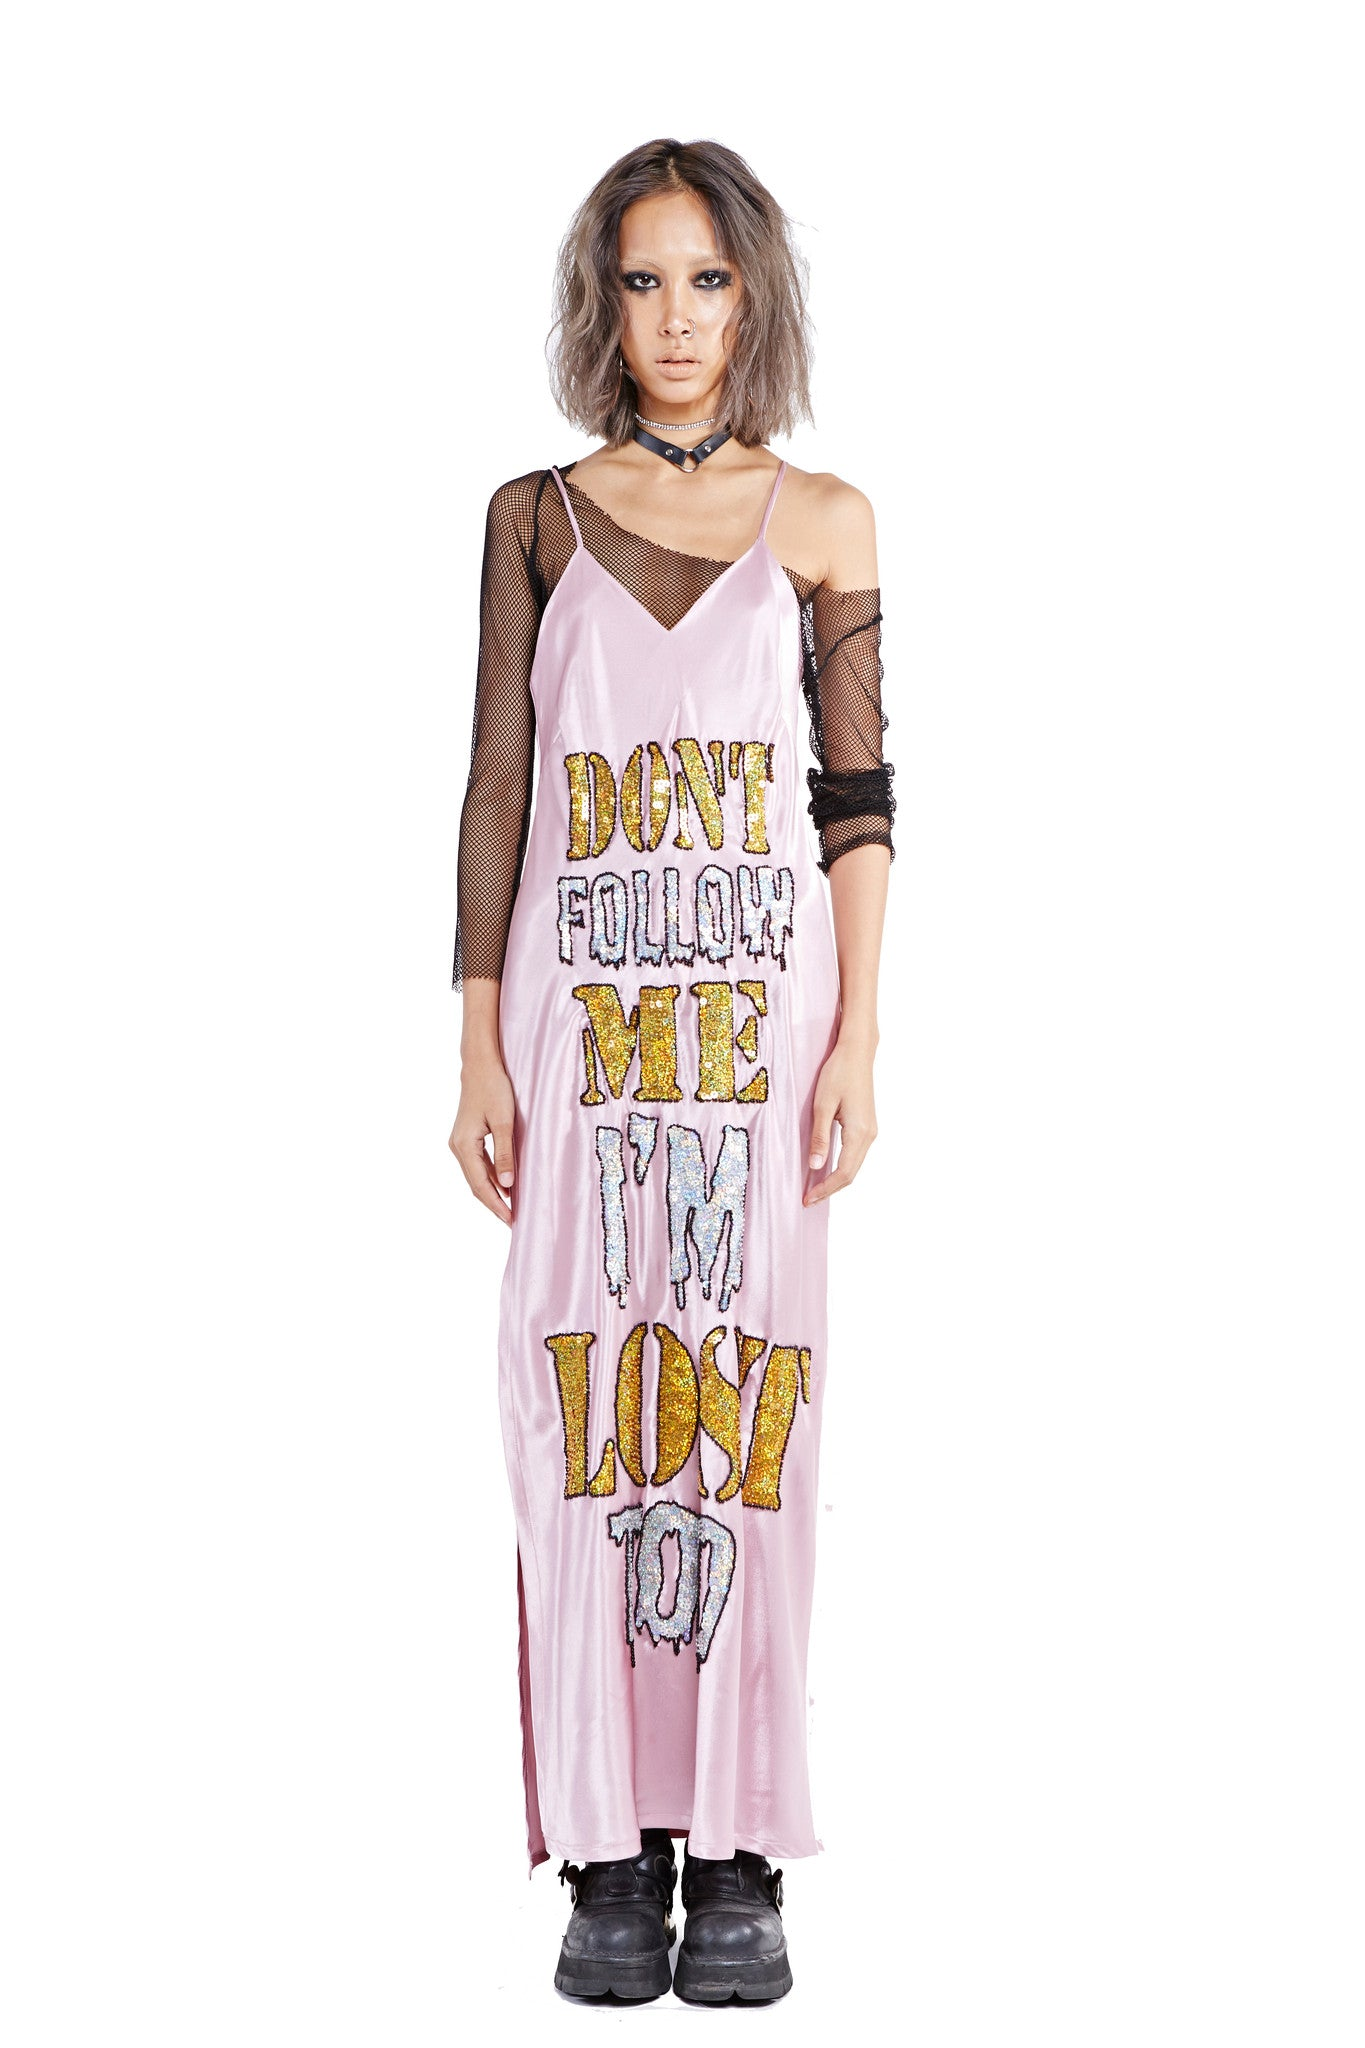 Lost Slip Dress - Pink